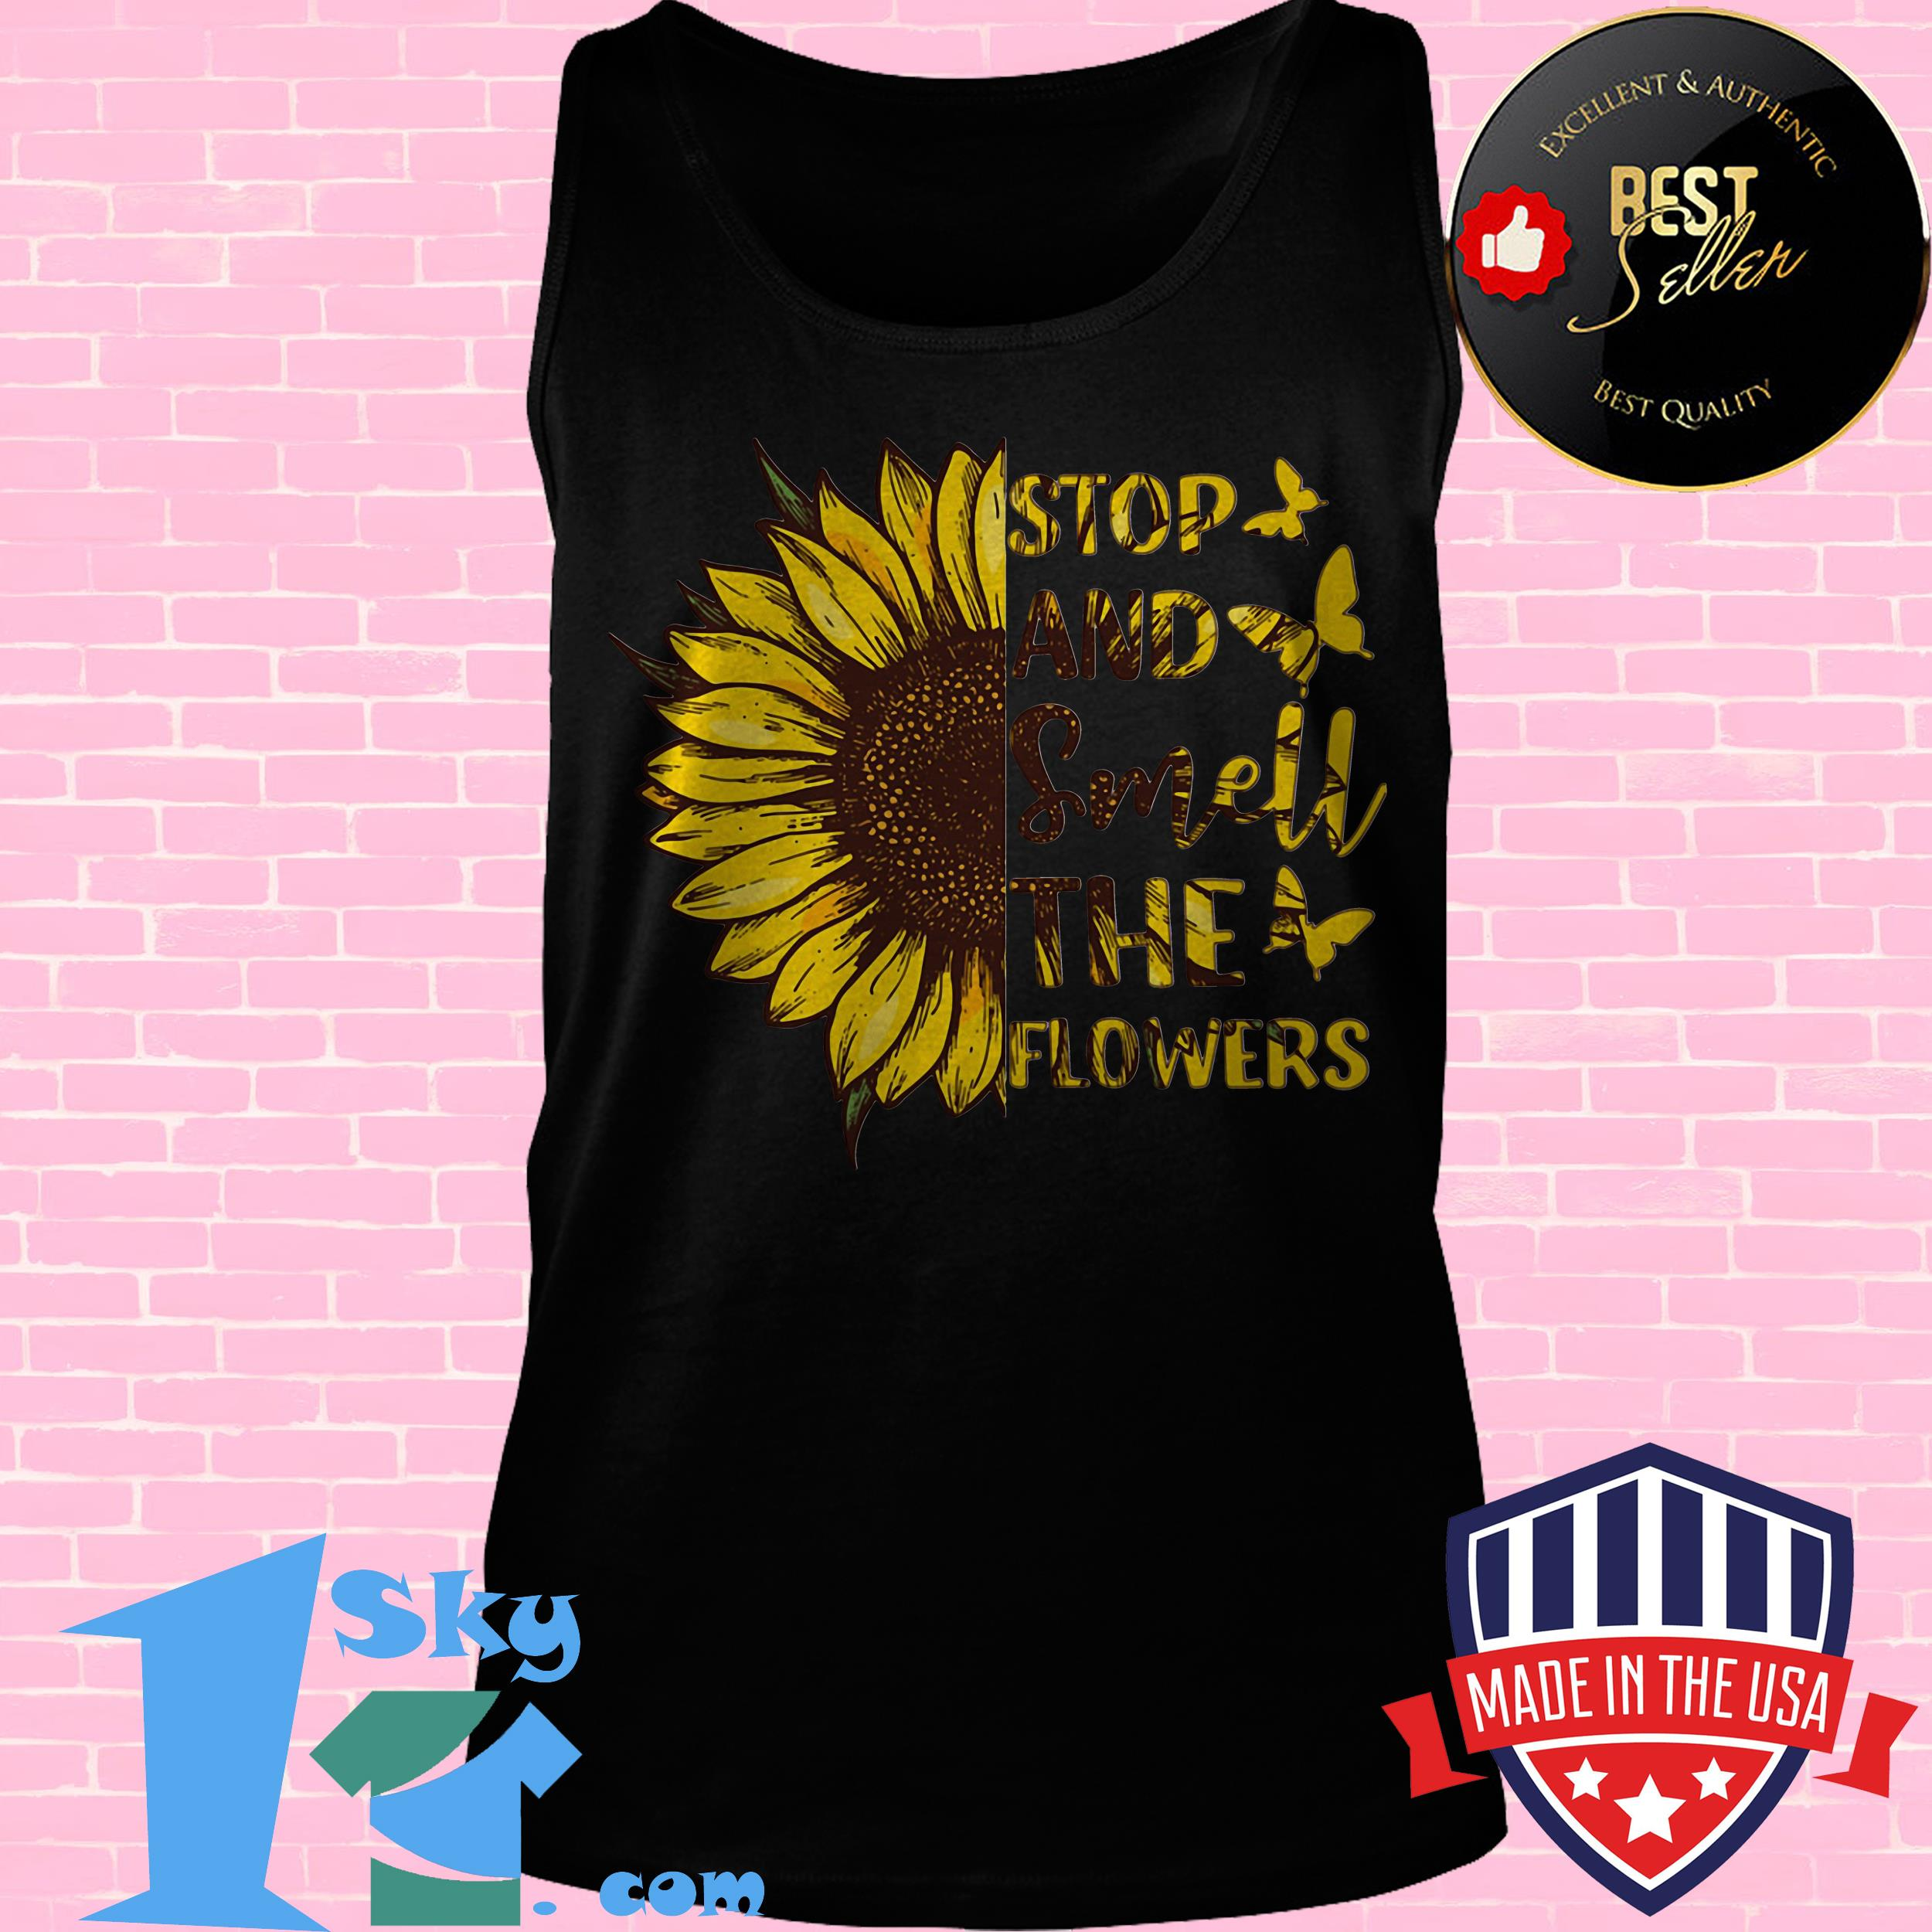 butterfly and sunflower stop and smell the flowers tank top - Butterfly and Sunflower Stop And Smell The Flowers shirt